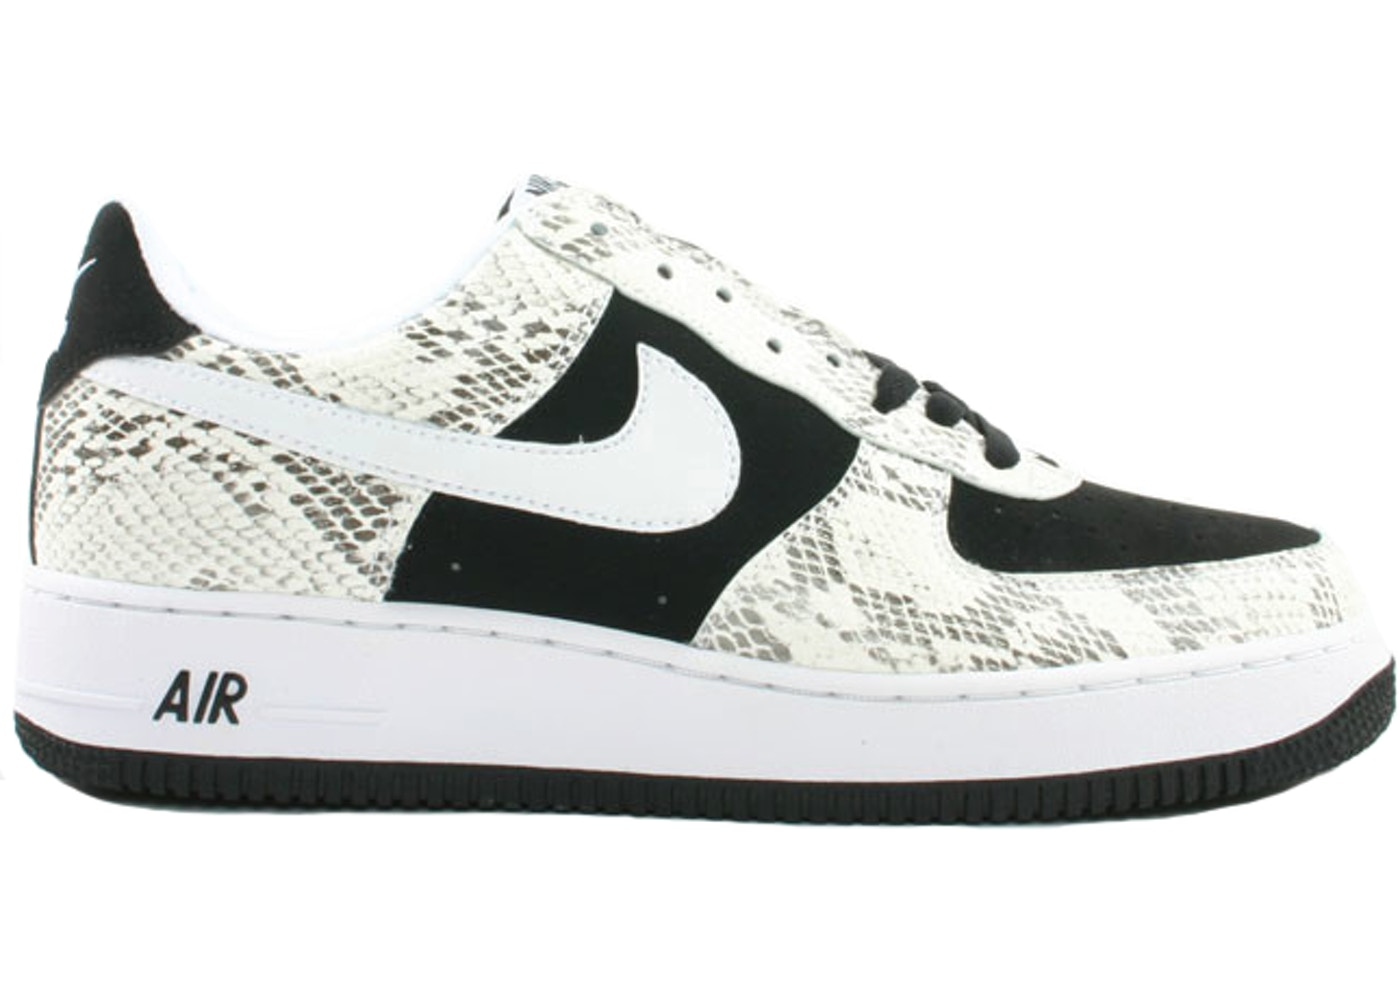 the best attitude 65797 f991d Air Force 1 Low Snakeskin Cocoa - 312945-011